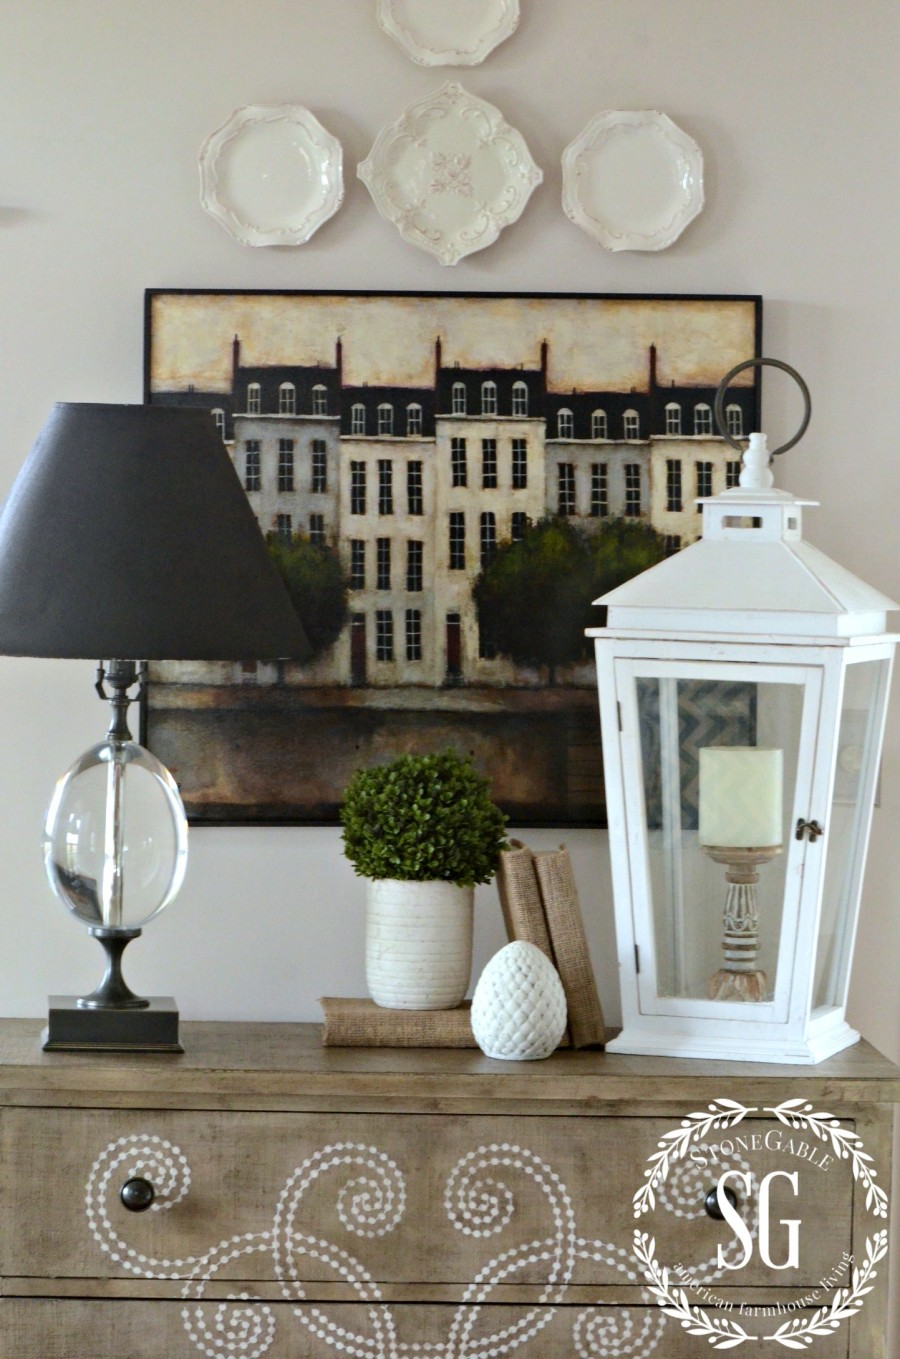 LOVING LANTERNS... TIPS FOR DECORATING WITH THEM